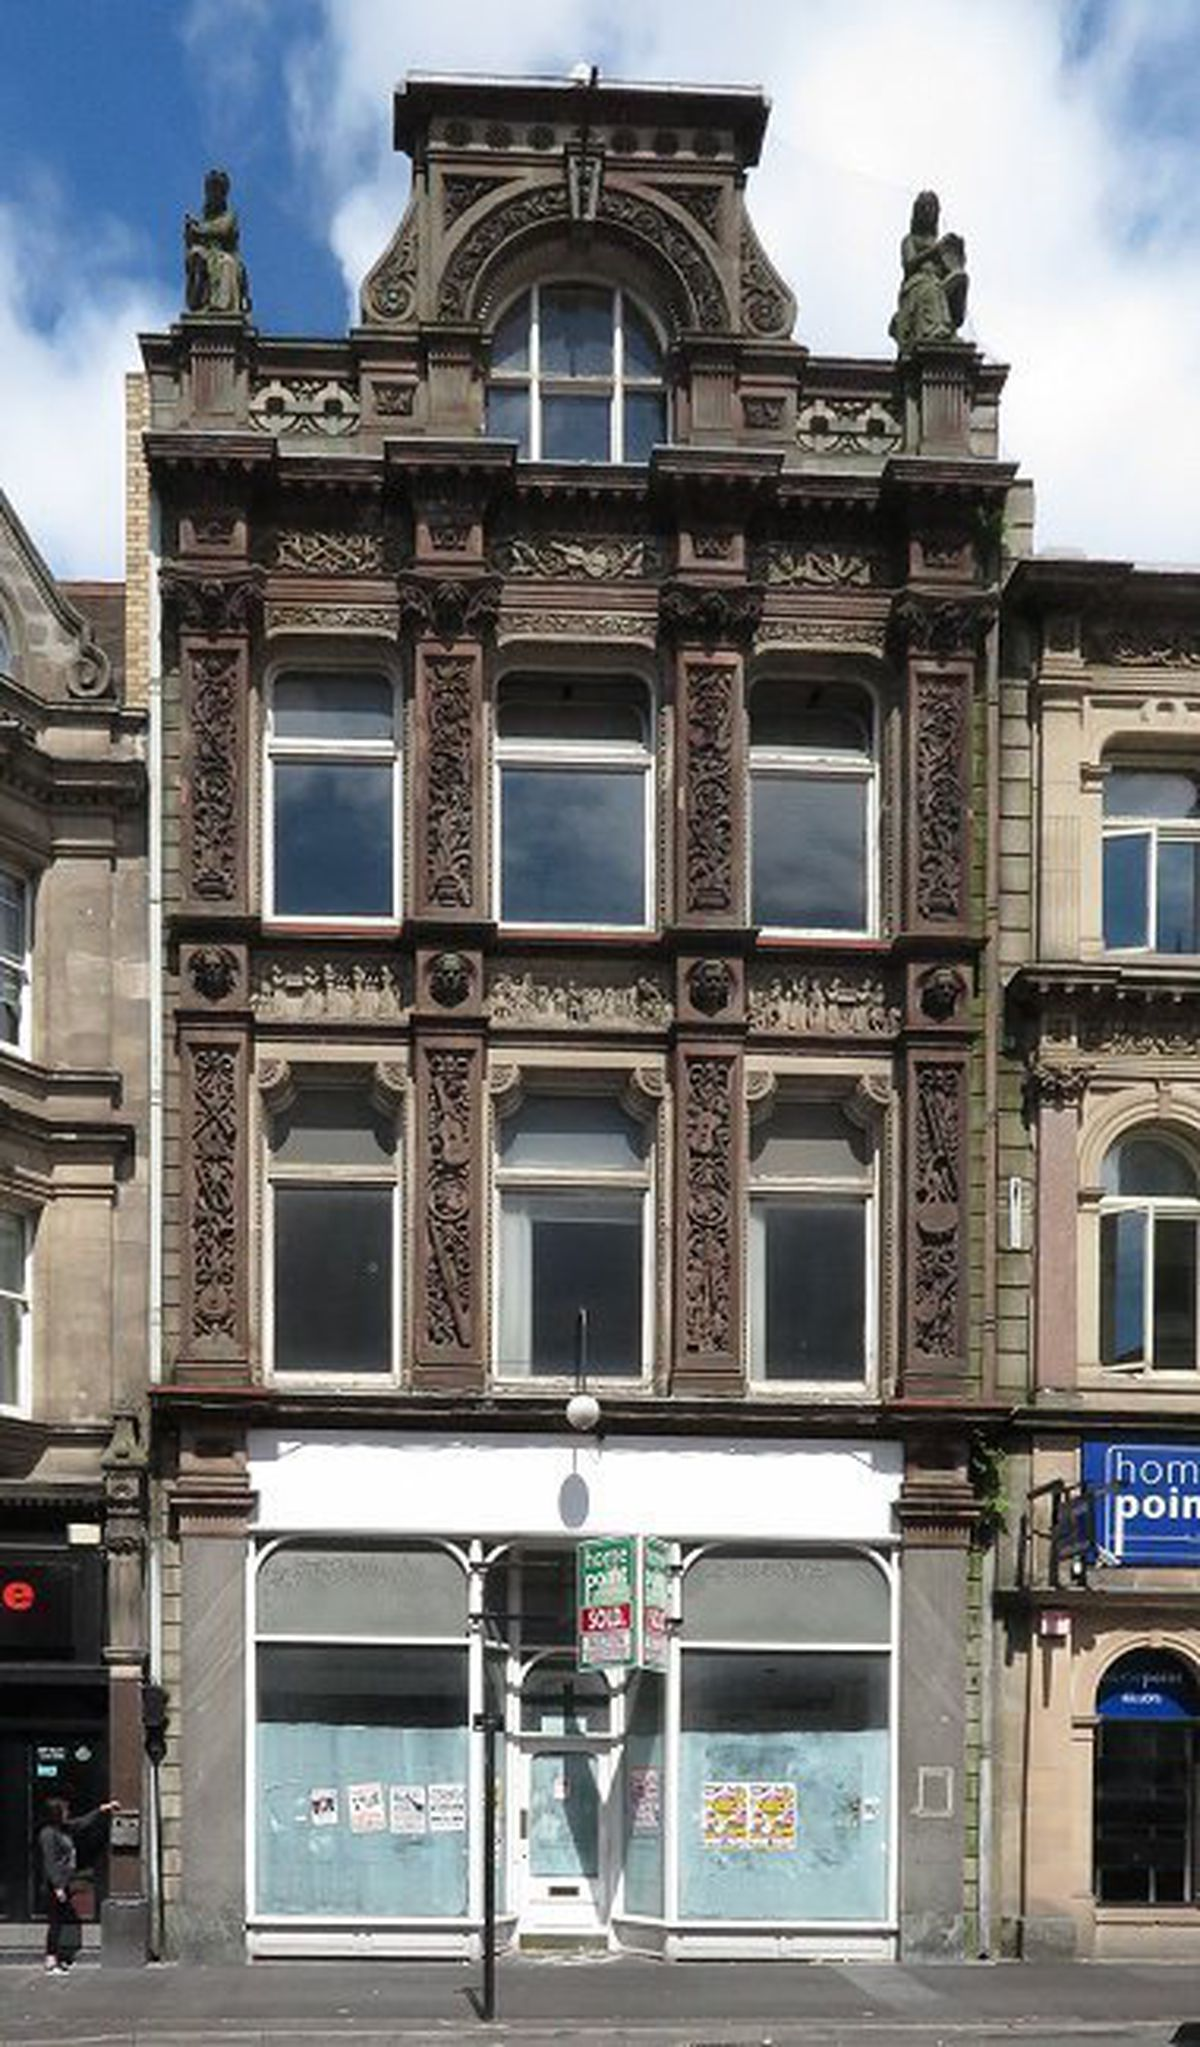 The former Taylor's Music Shop in Bridge Street, Walsall. Photo: Architecture and Interior Design.